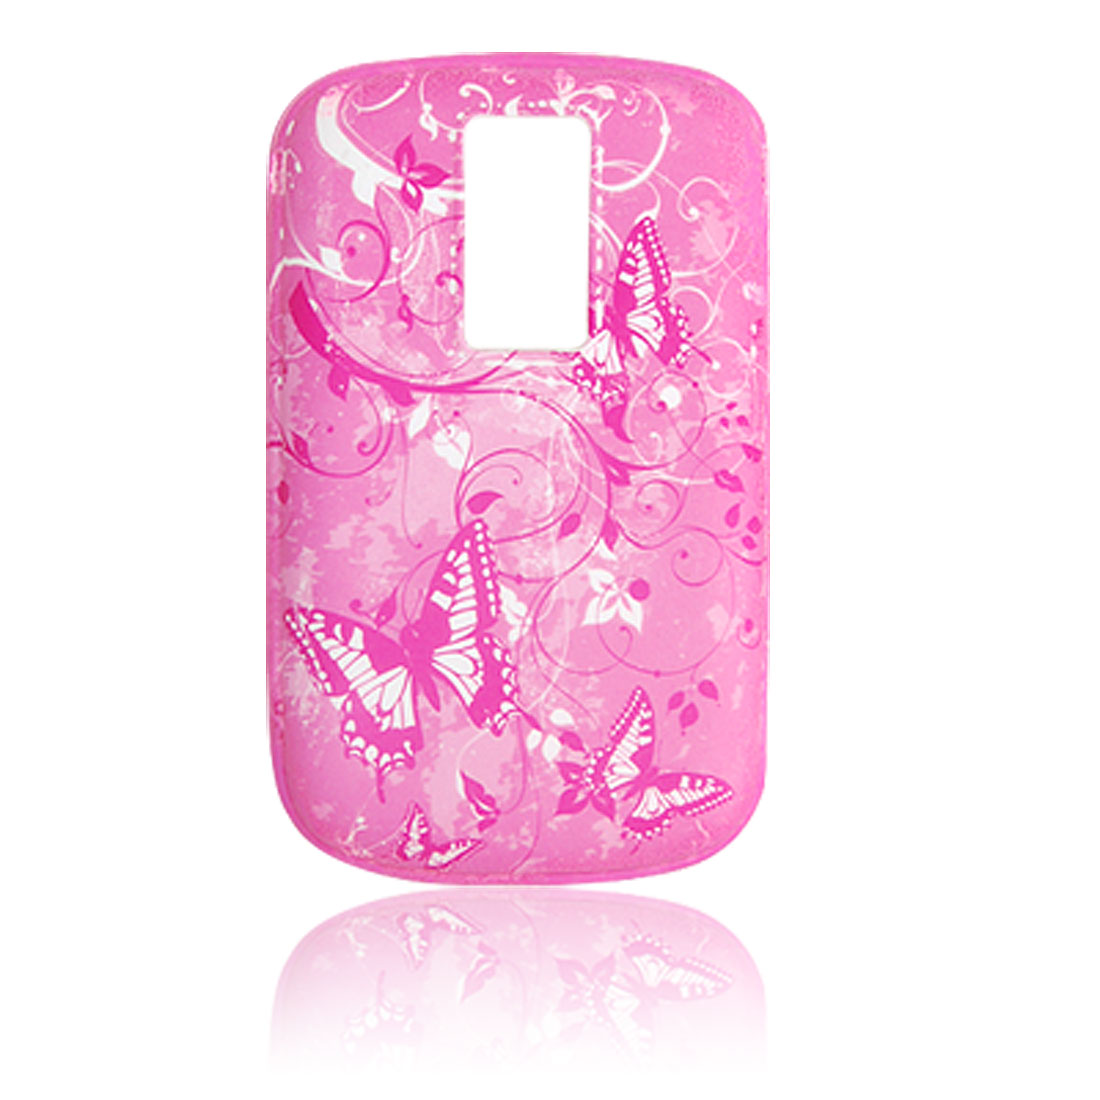 Butterfly Soft Plastic Case Cover Pink for Blackberry 9000